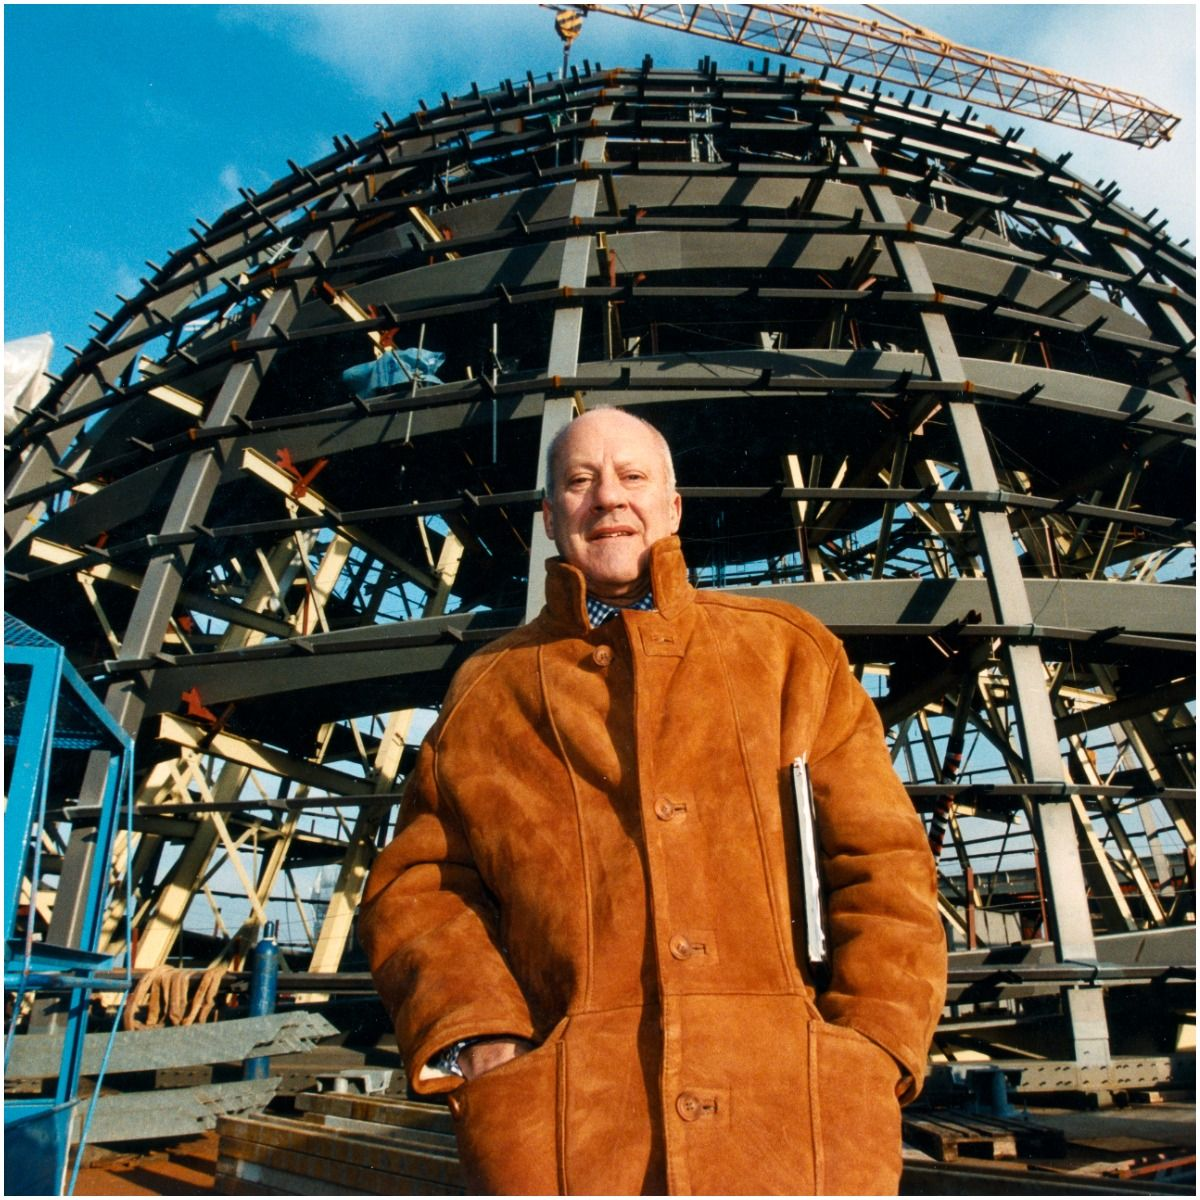 what is the net worth of Norman Foster